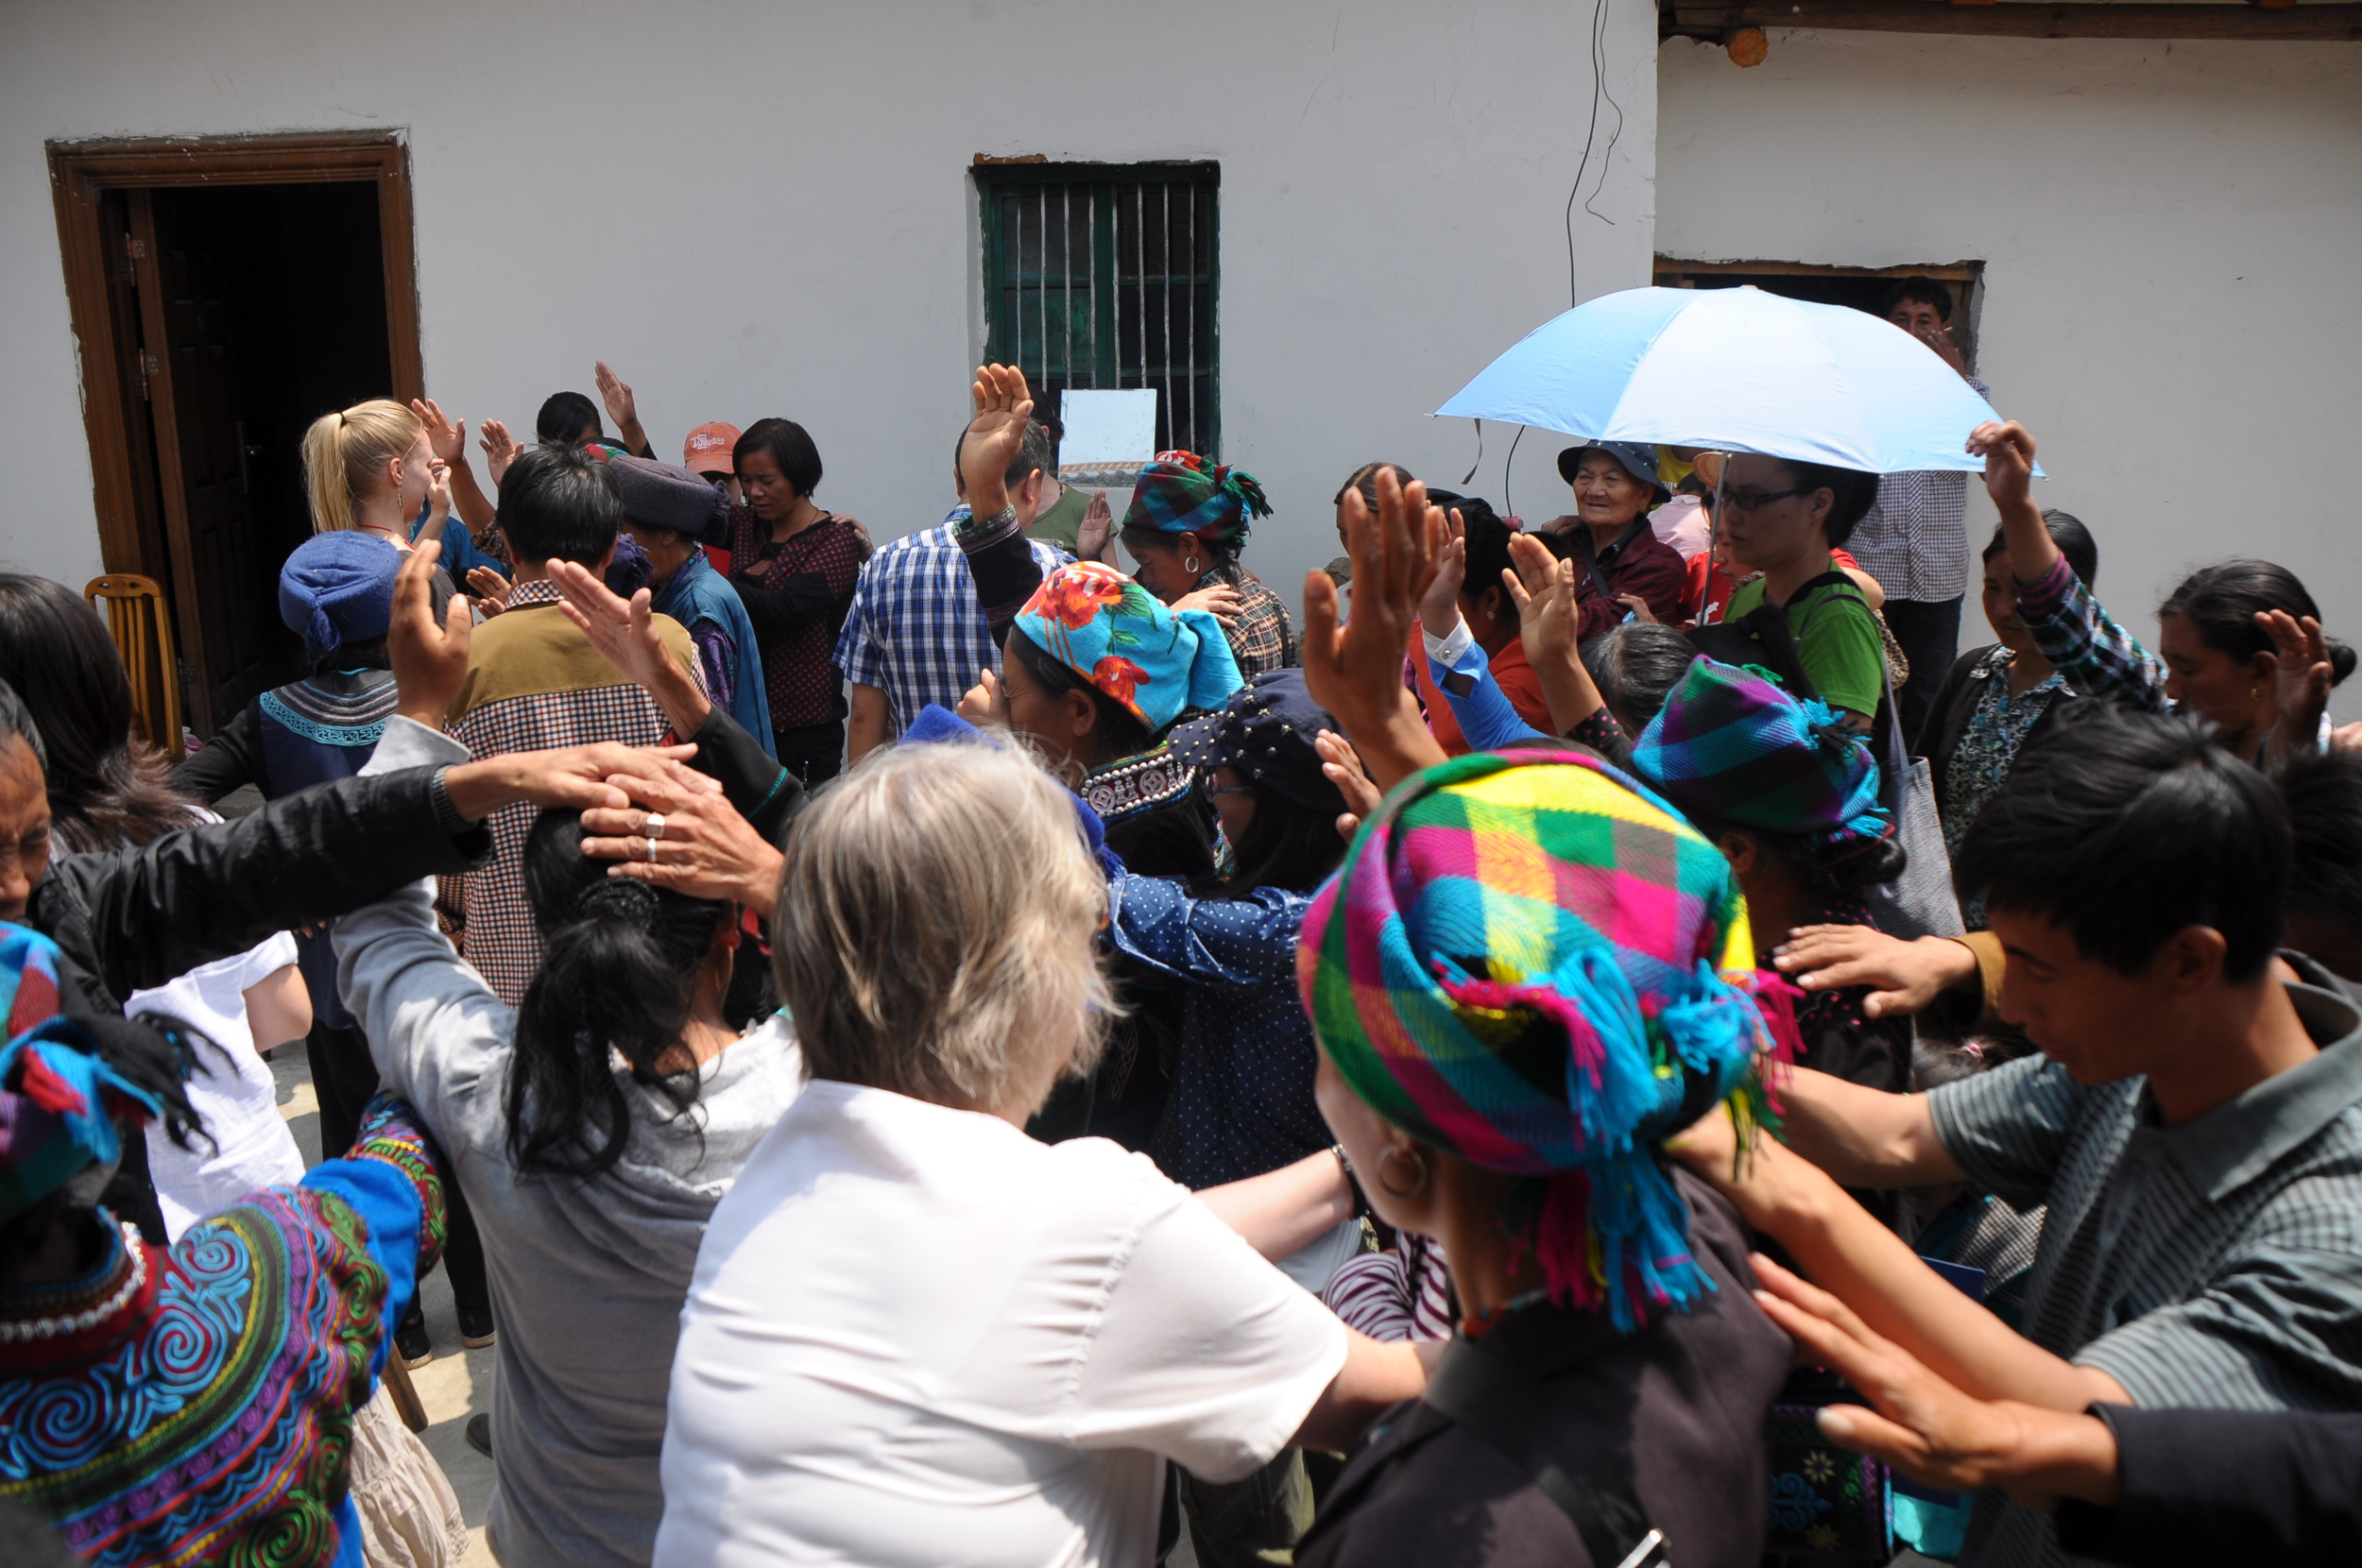 Indigenous, first-generation Jesus followers lay hands on the sick, seeing the healing power of God move through them.